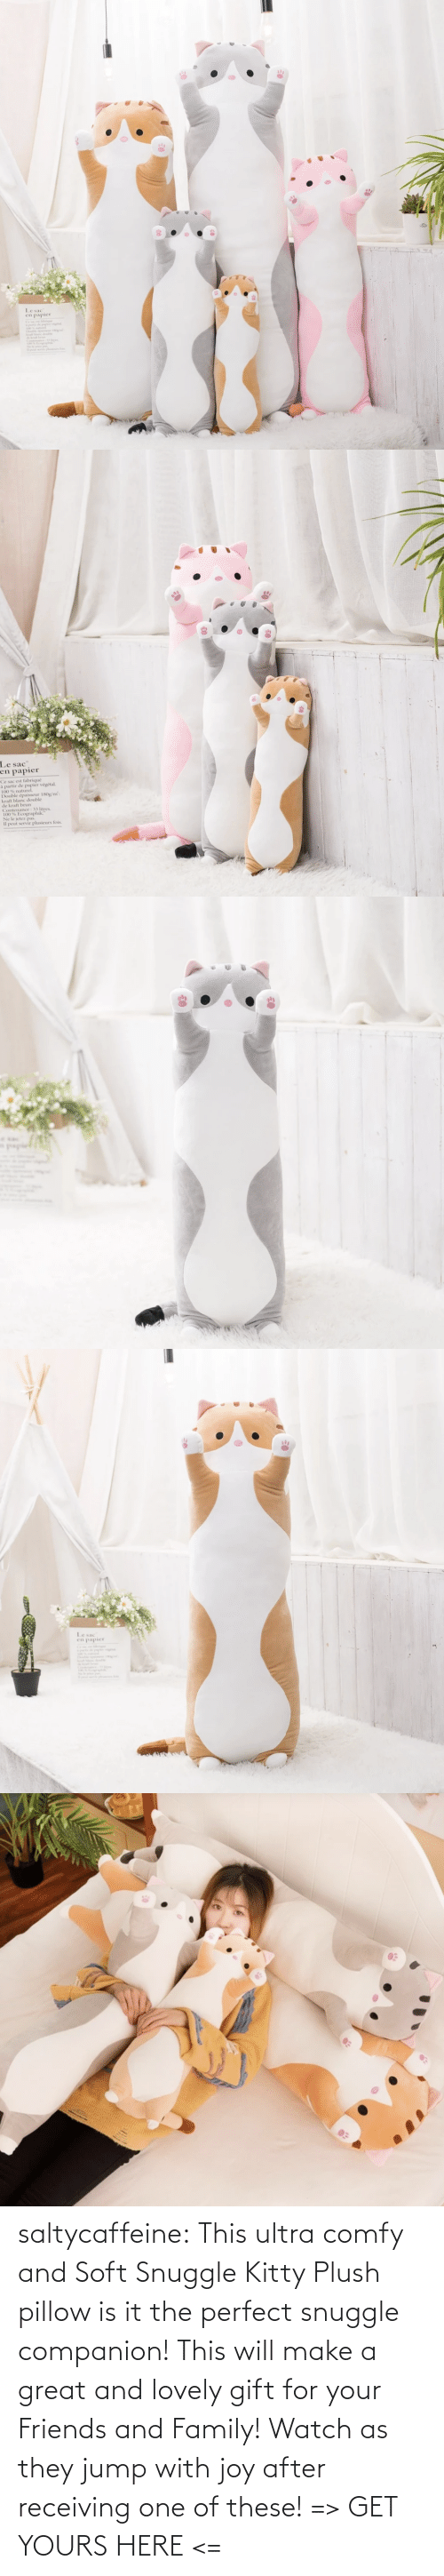 jump: saltycaffeine: This ultra comfy and Soft Snuggle Kitty Plush pillow is it the perfect snuggle companion! This will make a great and lovely gift for your Friends and Family! Watch as they jump with joy after receiving one of these! => GET YOURS HERE <=